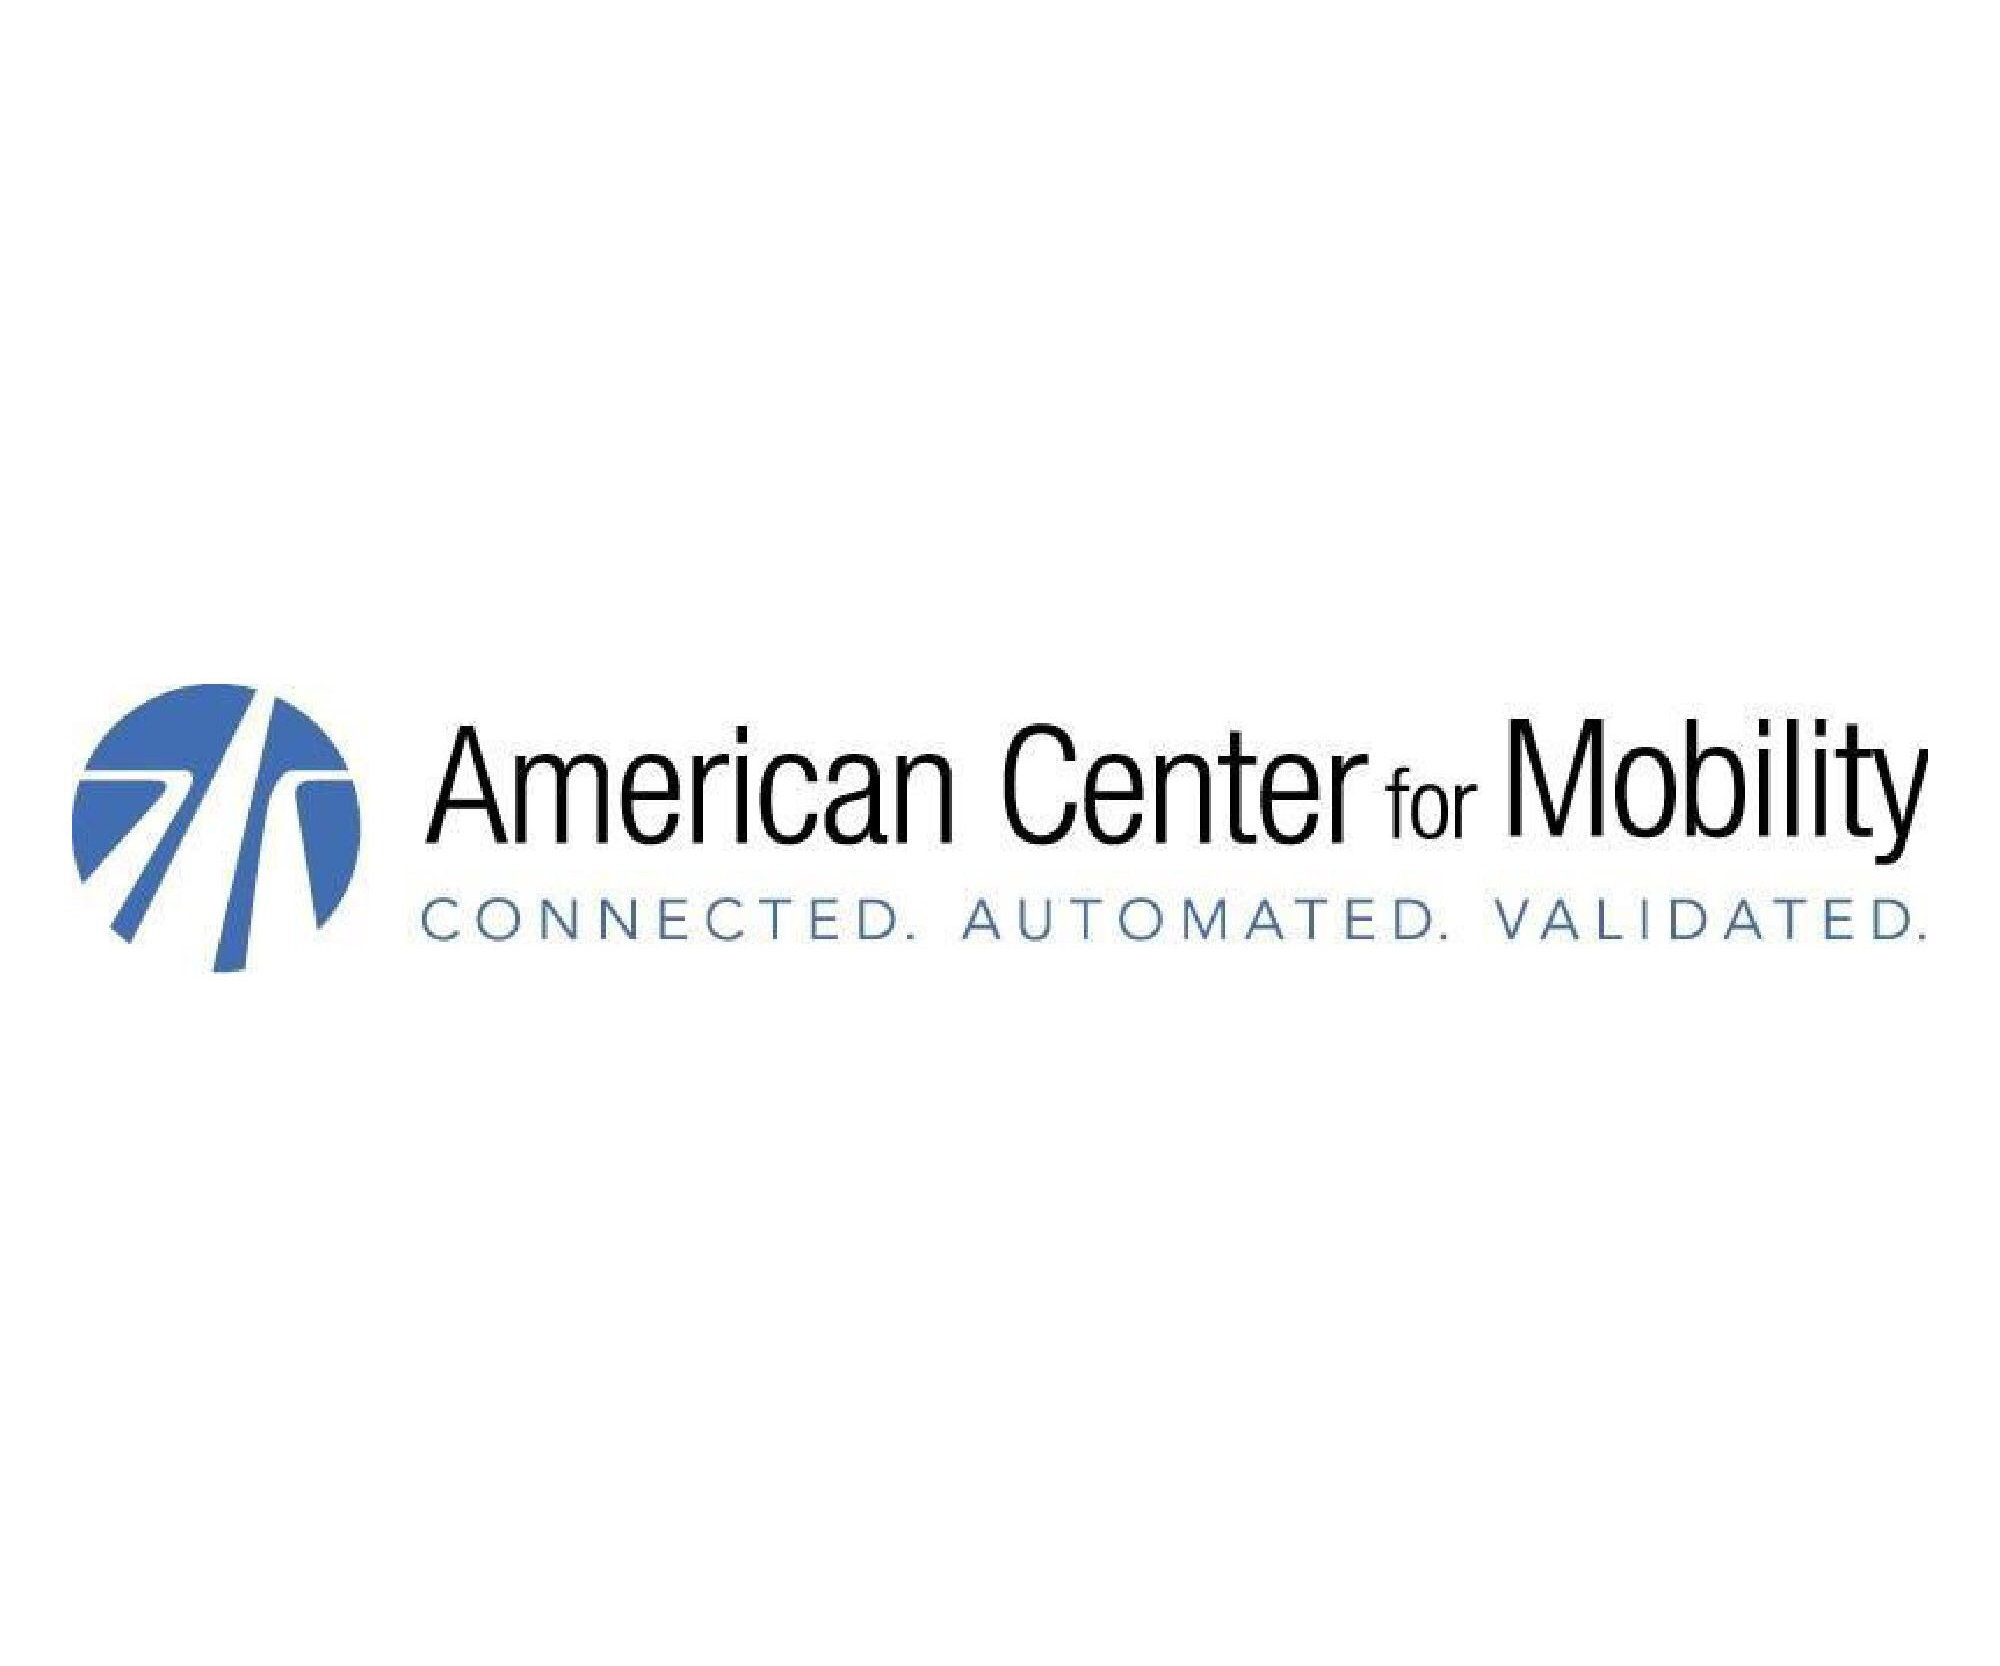 Toyota to Collaborate with the American Center for Mobility